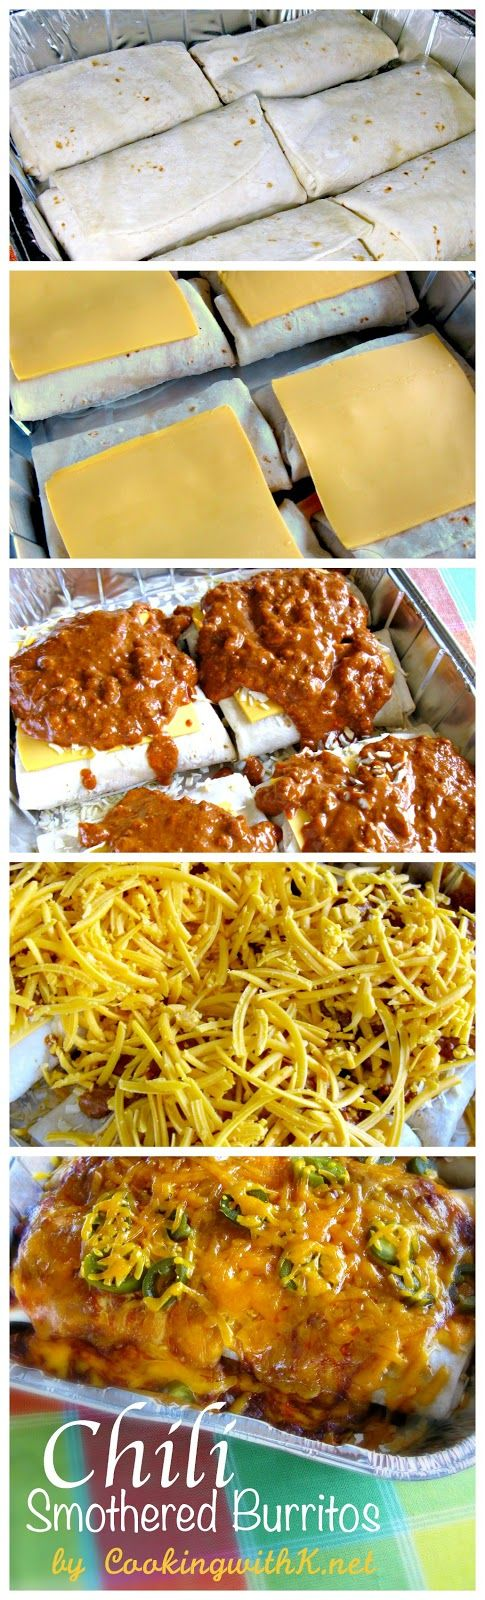 Weeknight Supper Meal, an inspiration for a meal one night of the week including ideas to make part of the meal ahead, freezing leftovers, or makeover leftovers for another meal.  Premade